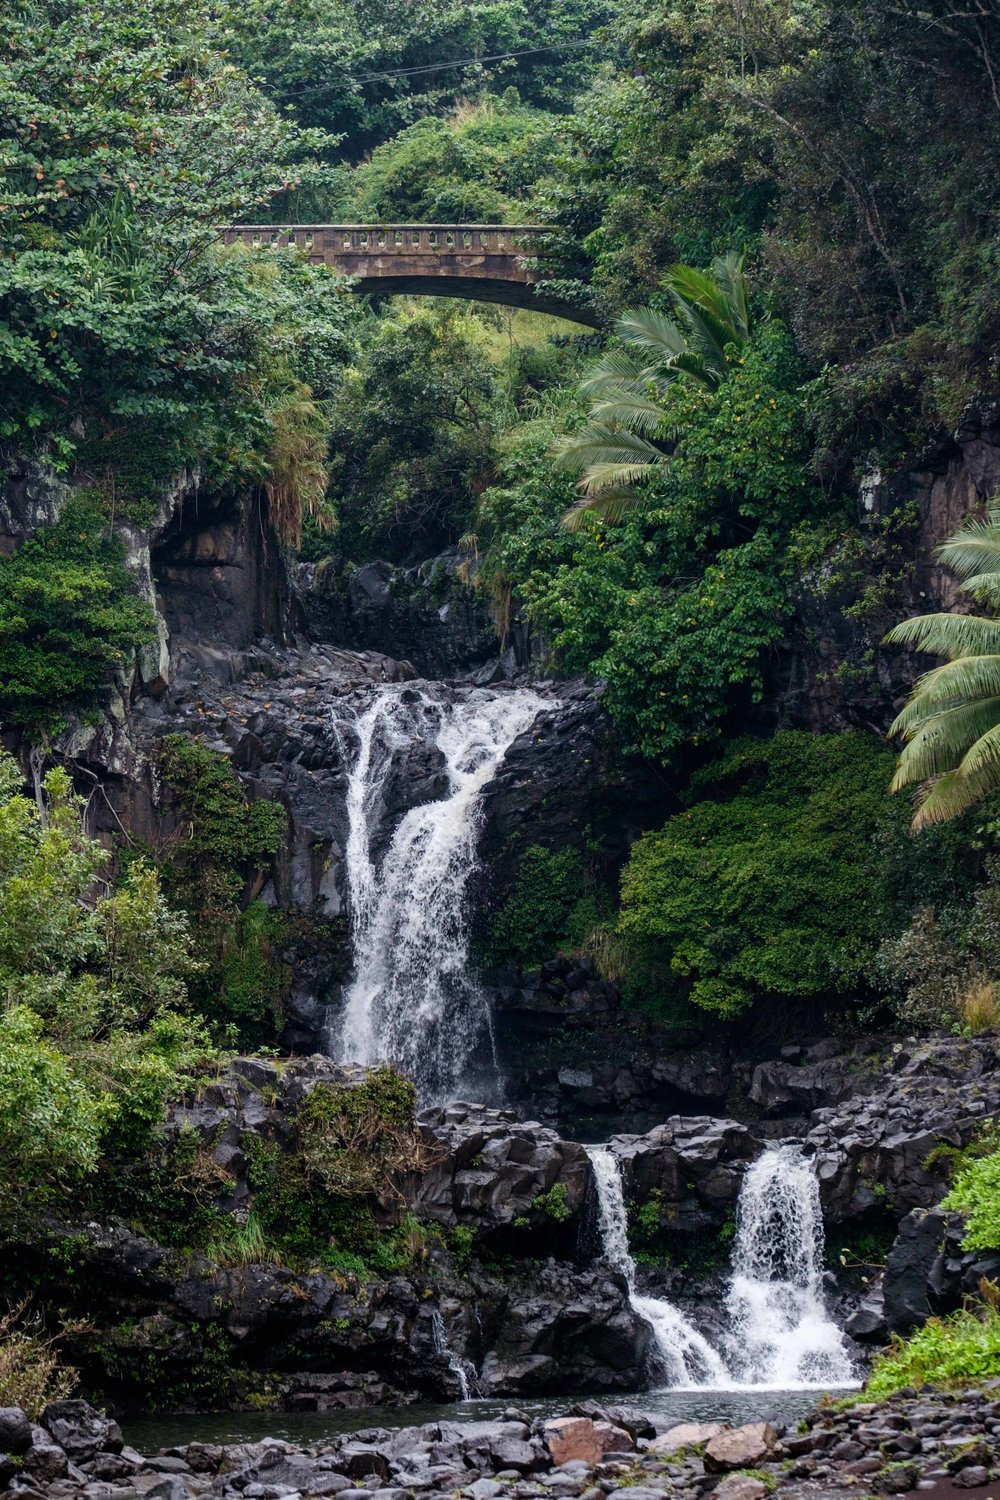 A view of some of the Seven Sacred Pools in the Ohe'o Gulch.